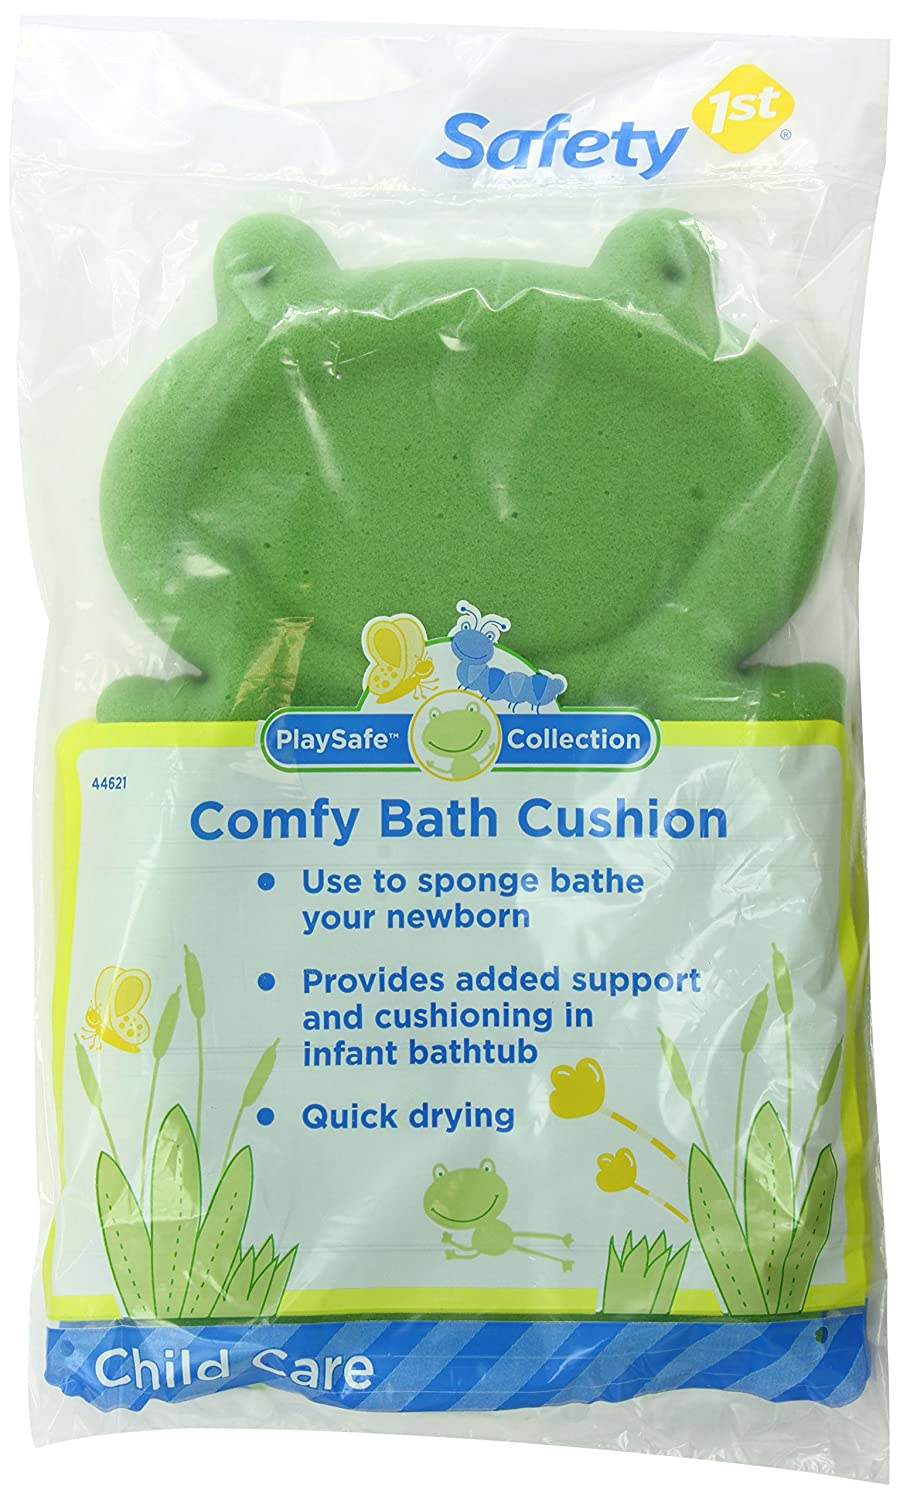 Safety 1st Comfy Bath Cushion, Green Dorel Juvenile Group 44621 SD-G7WG-B92Q